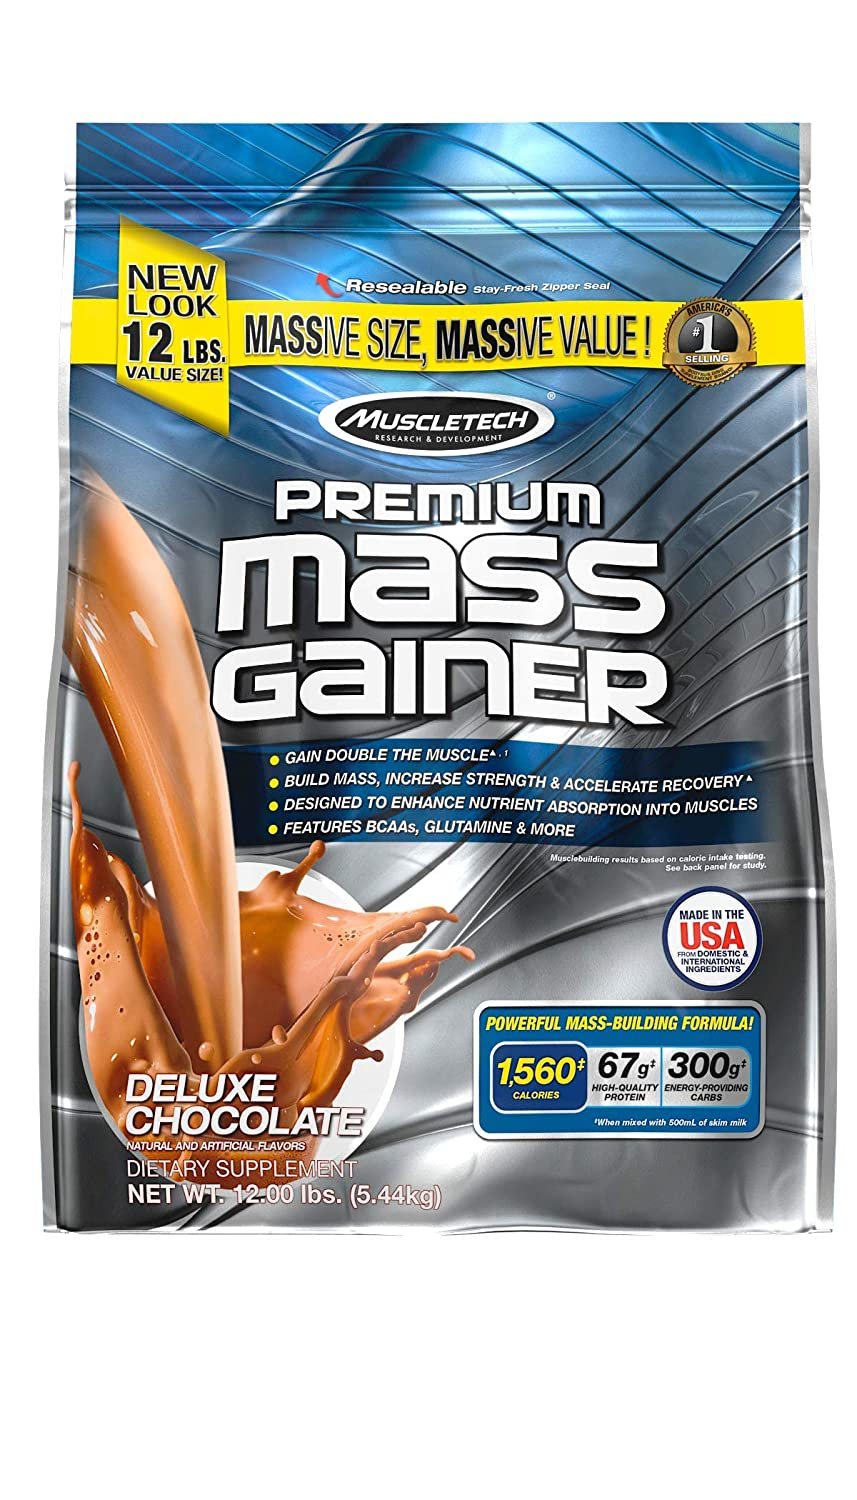 MuscleTech Premium Mass Gainer - Super Nutrition